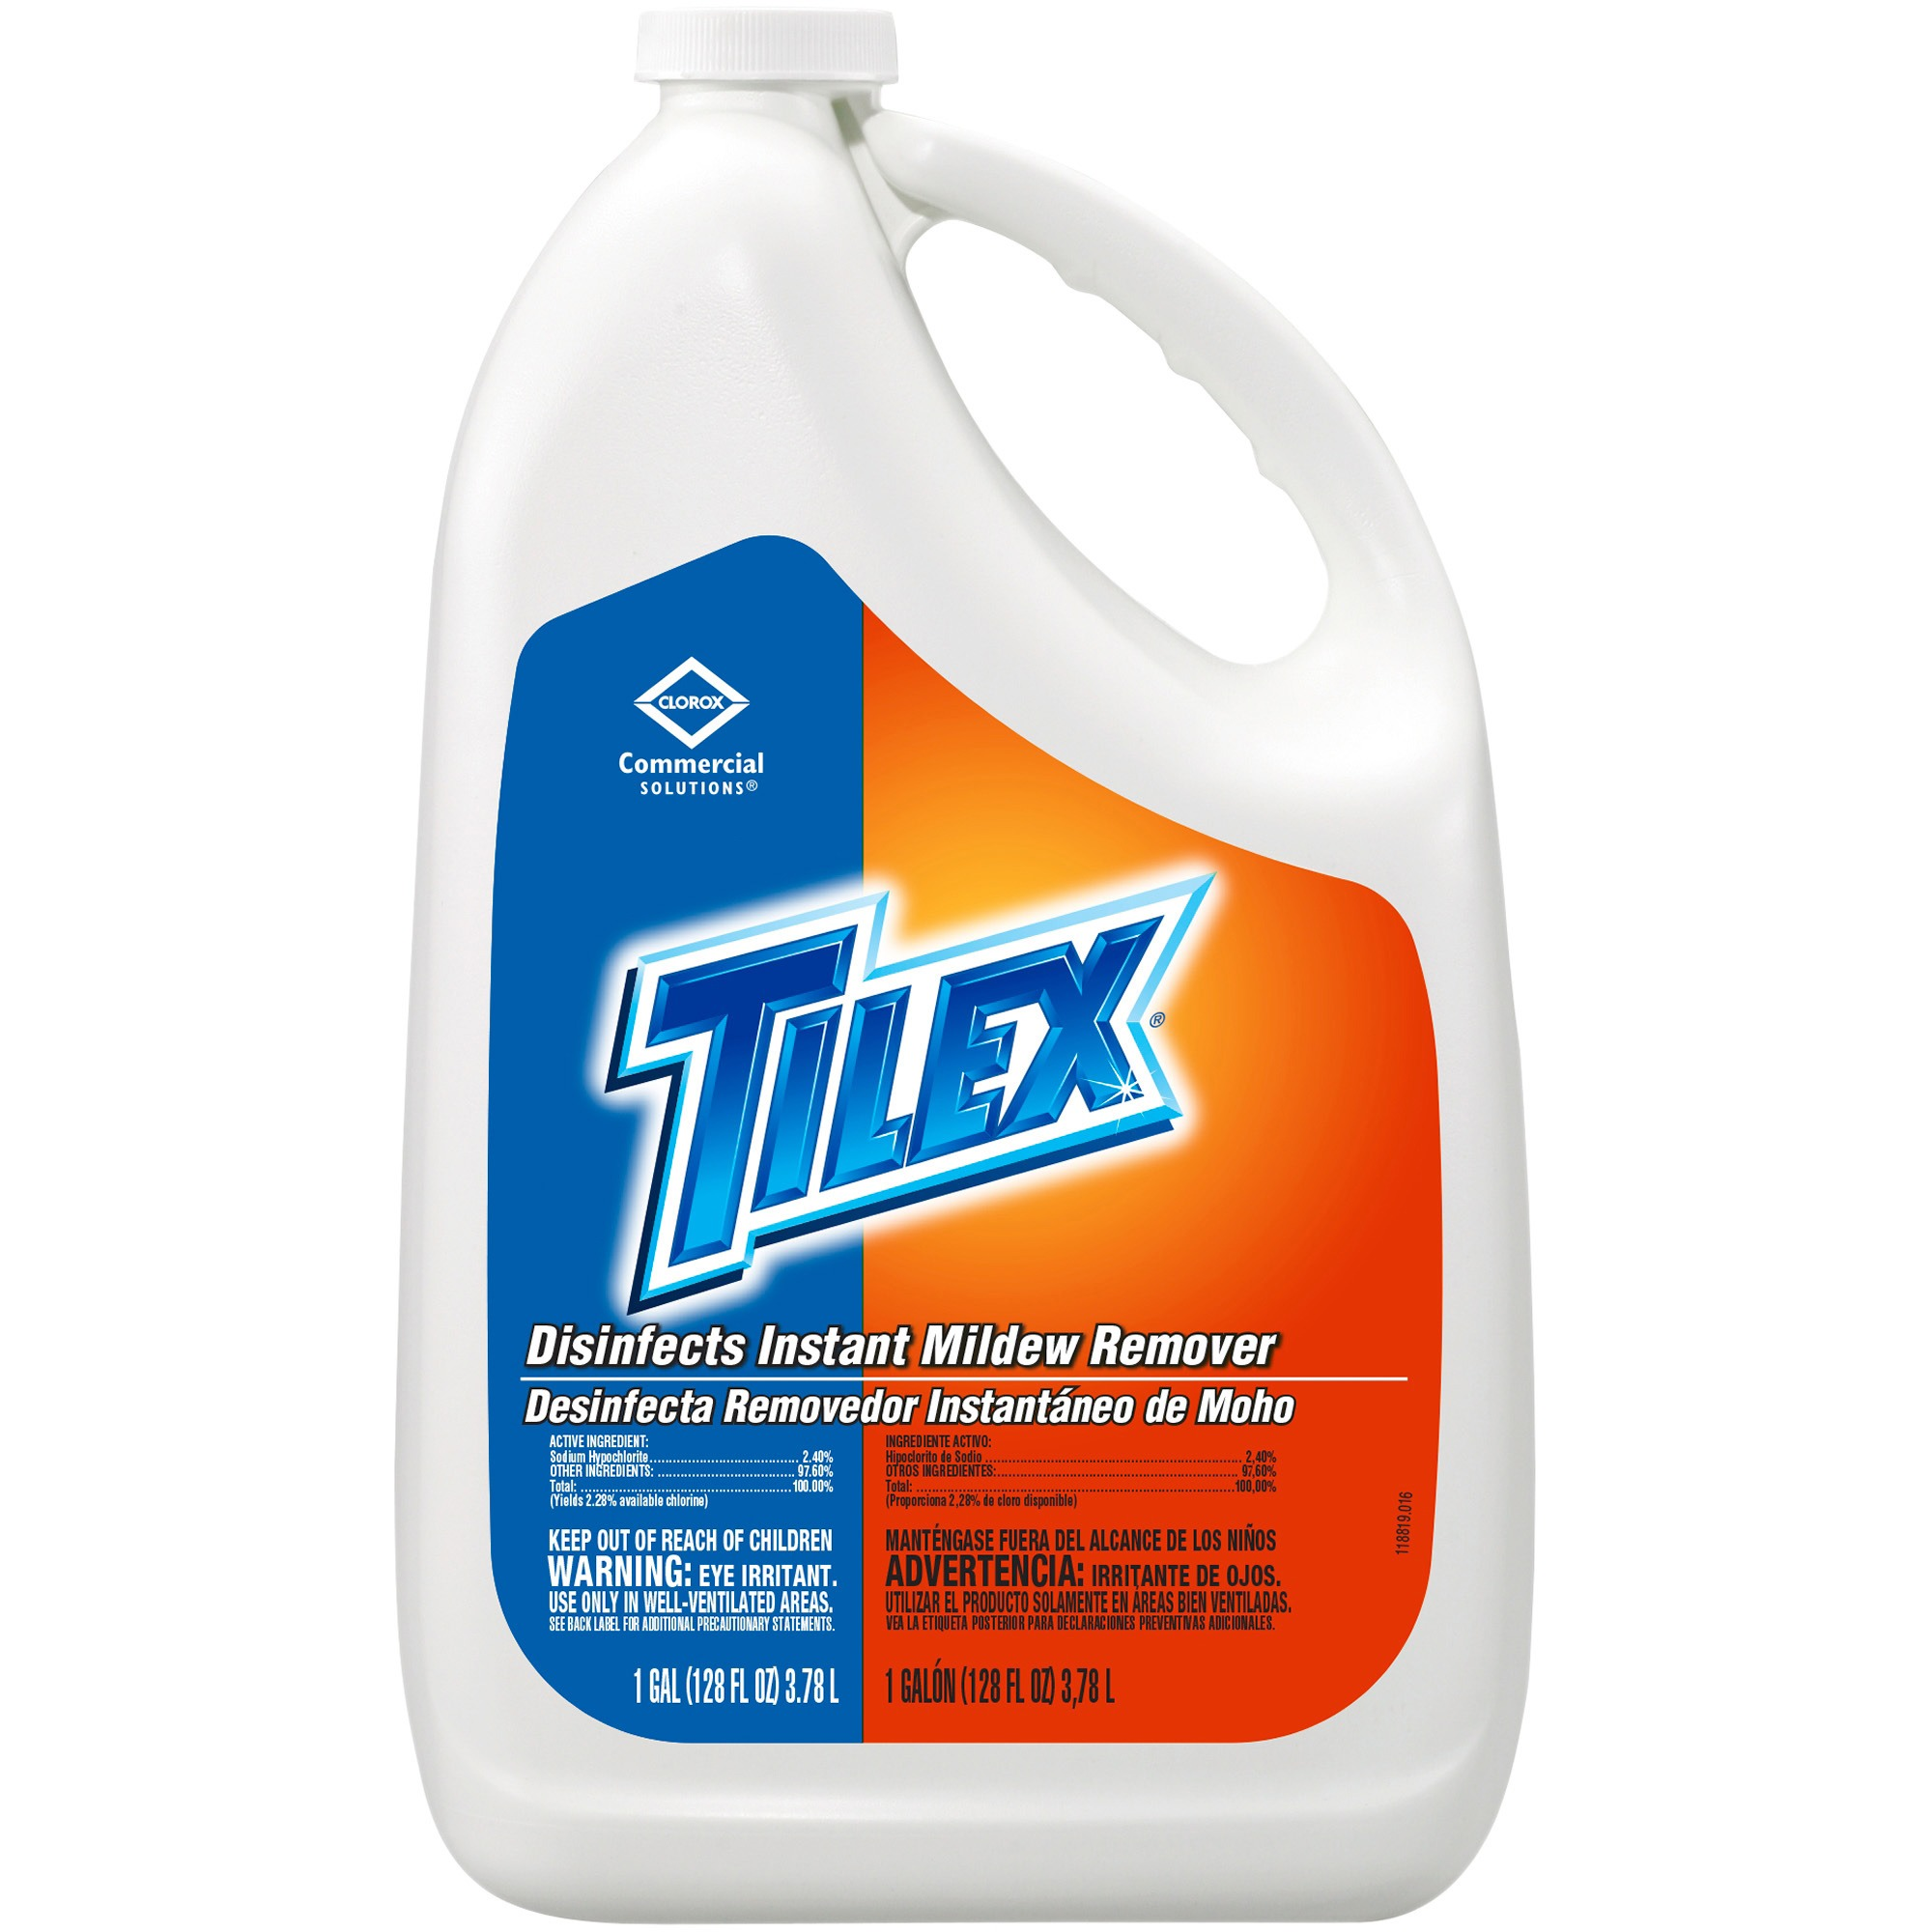 Tilex Disinfects Instant Mildew Remover Refill Bottle, 128 fl oz, (Pack of 4)